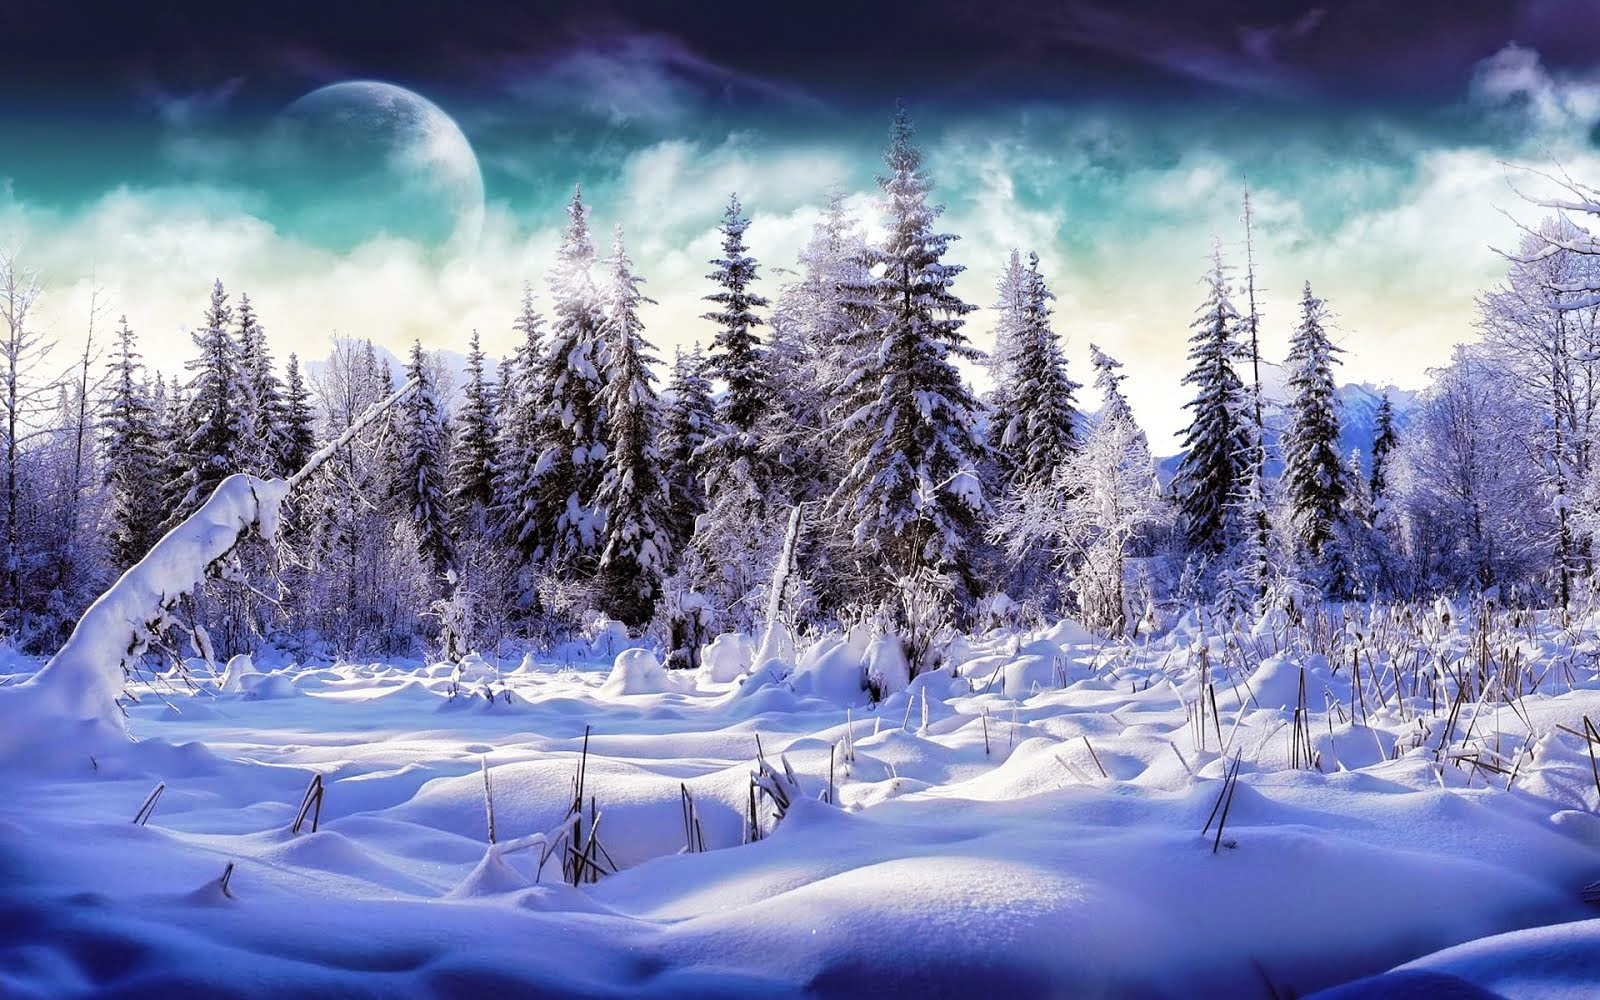 Winter HD Wallpapers | HD Wallpapers | Download Free High Definition Desktop / PC Wallpapers